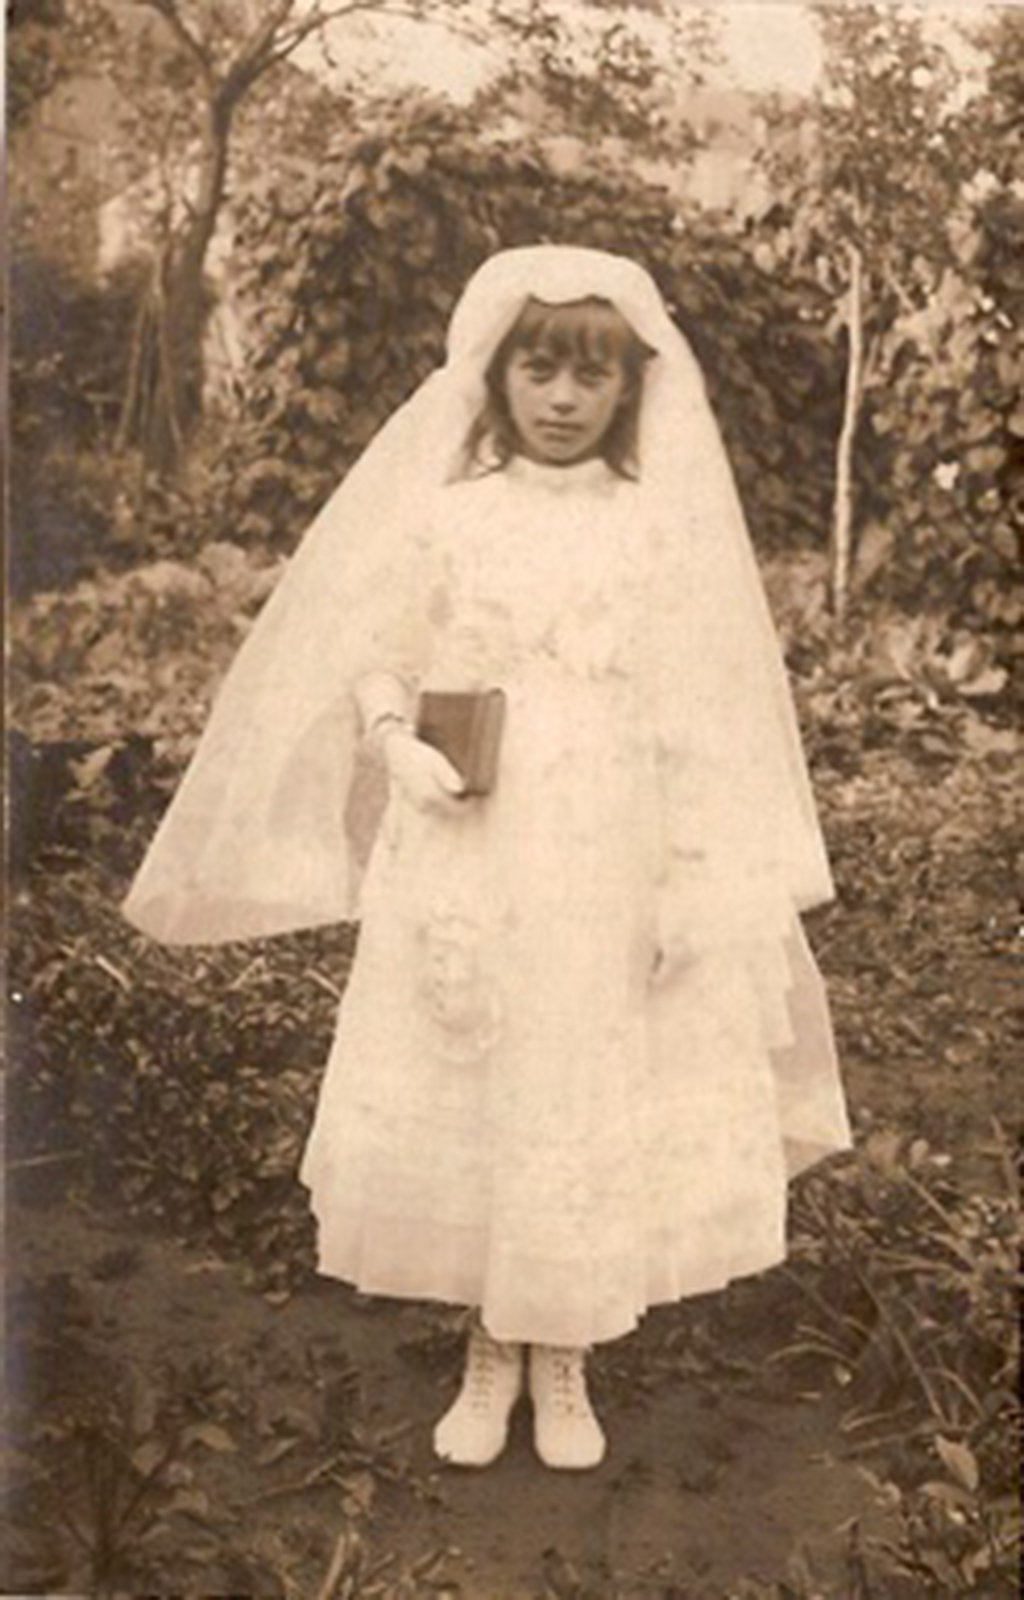 Maria Wagener dressed in a First Communion gown, 1917, Europeana 1914-1918 / Irmine Thelen, CC BY-SA